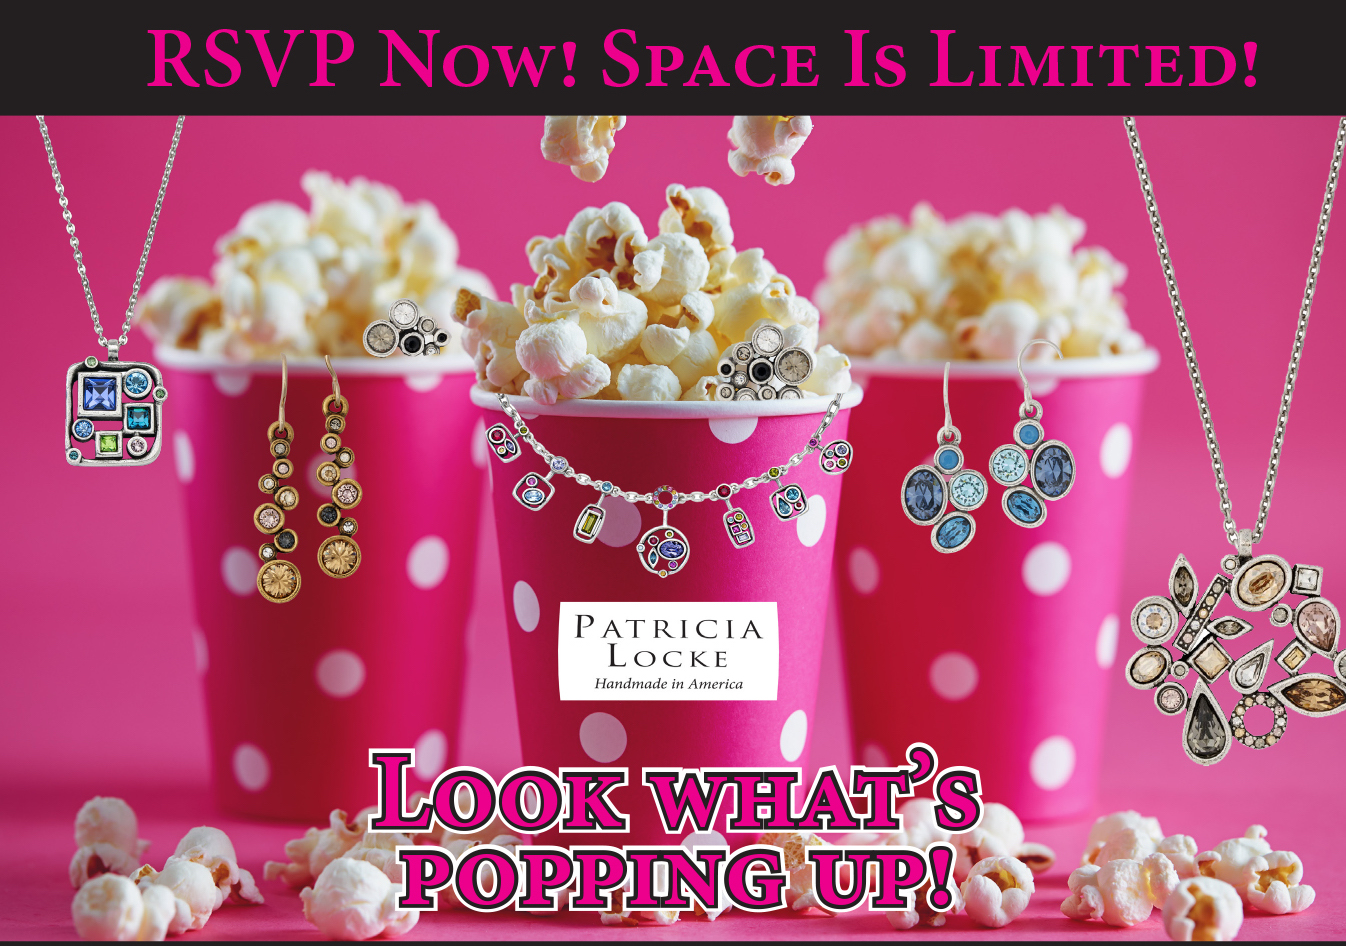 RSVP NOW for the Patricia Locke Pop Up Show!!